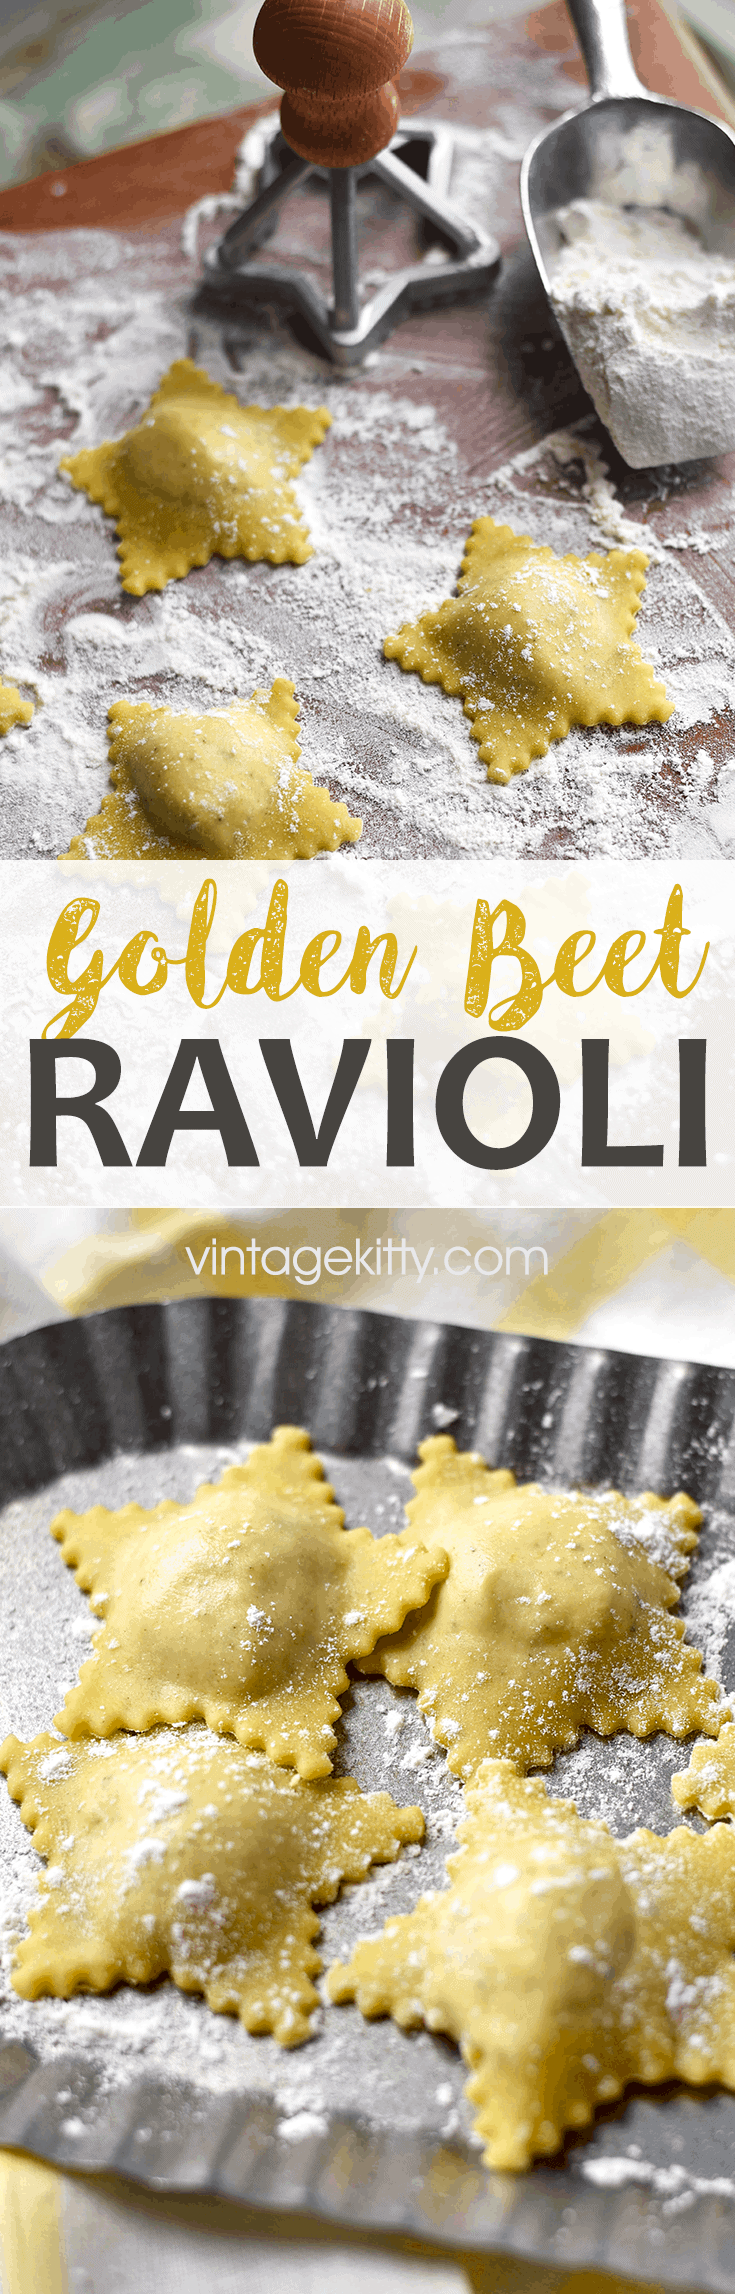 Festive and delicious Golden Beet Ravioli will be the star of your dinner or your party. This great recipe combines fresh, from scratch pasta, with an easy cheesy savory filling that makes enough for a party or to save for later. #fromscratch #ravioli #goldenbeets